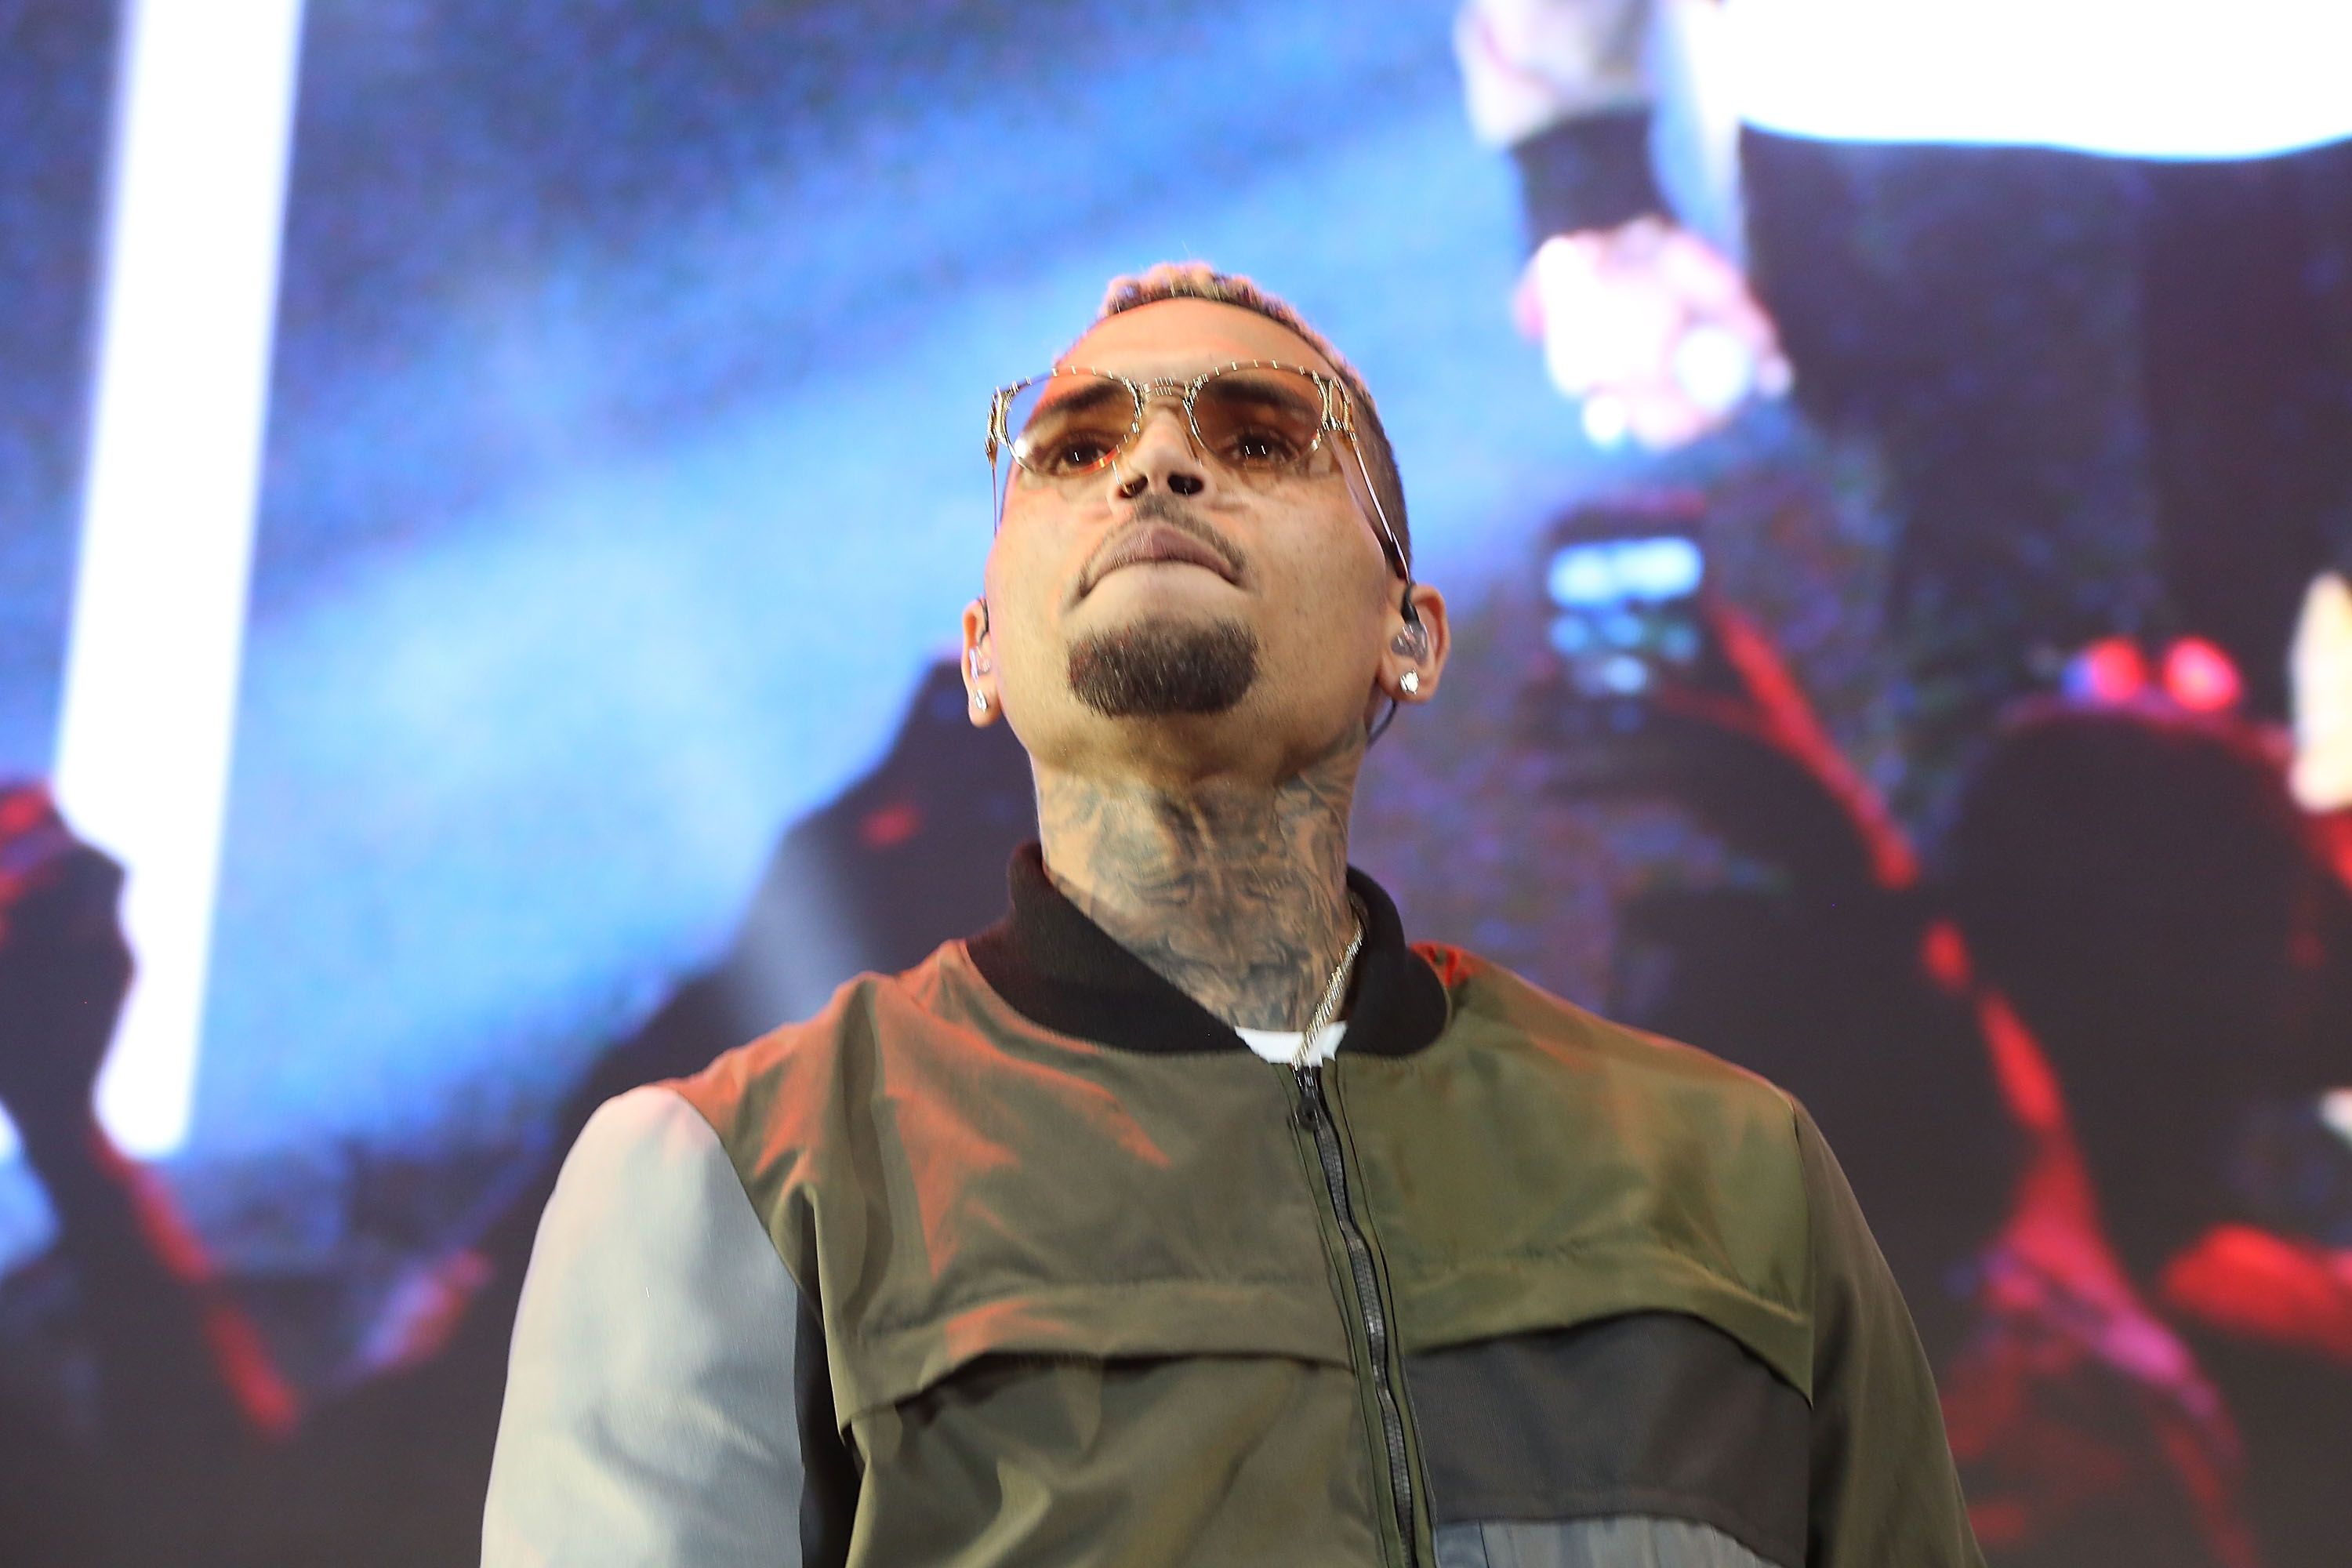 13 Lyric References That Let Us Know Chris Brown's Sex Game Is 'About That Life'